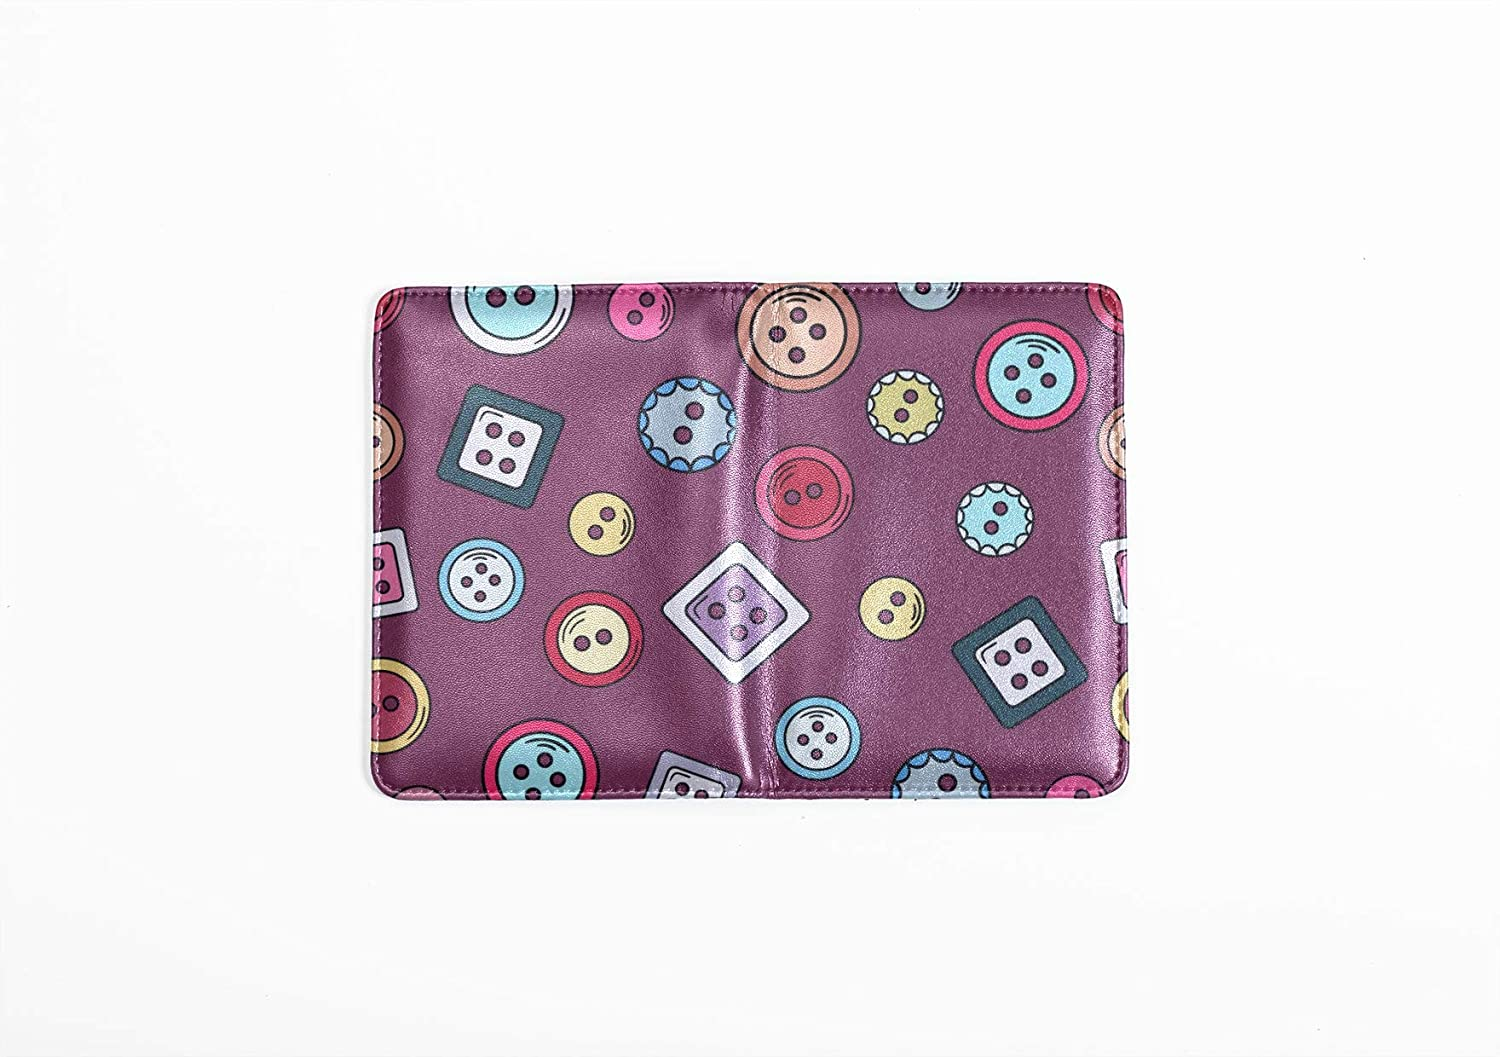 Unique Passport Cover Fashion Cute Colorful Creative Button Cover Passport Multi Purpose Print Us Passport Cover Plastic Travel Wallets For Unisex 5.51x4.37 Inch